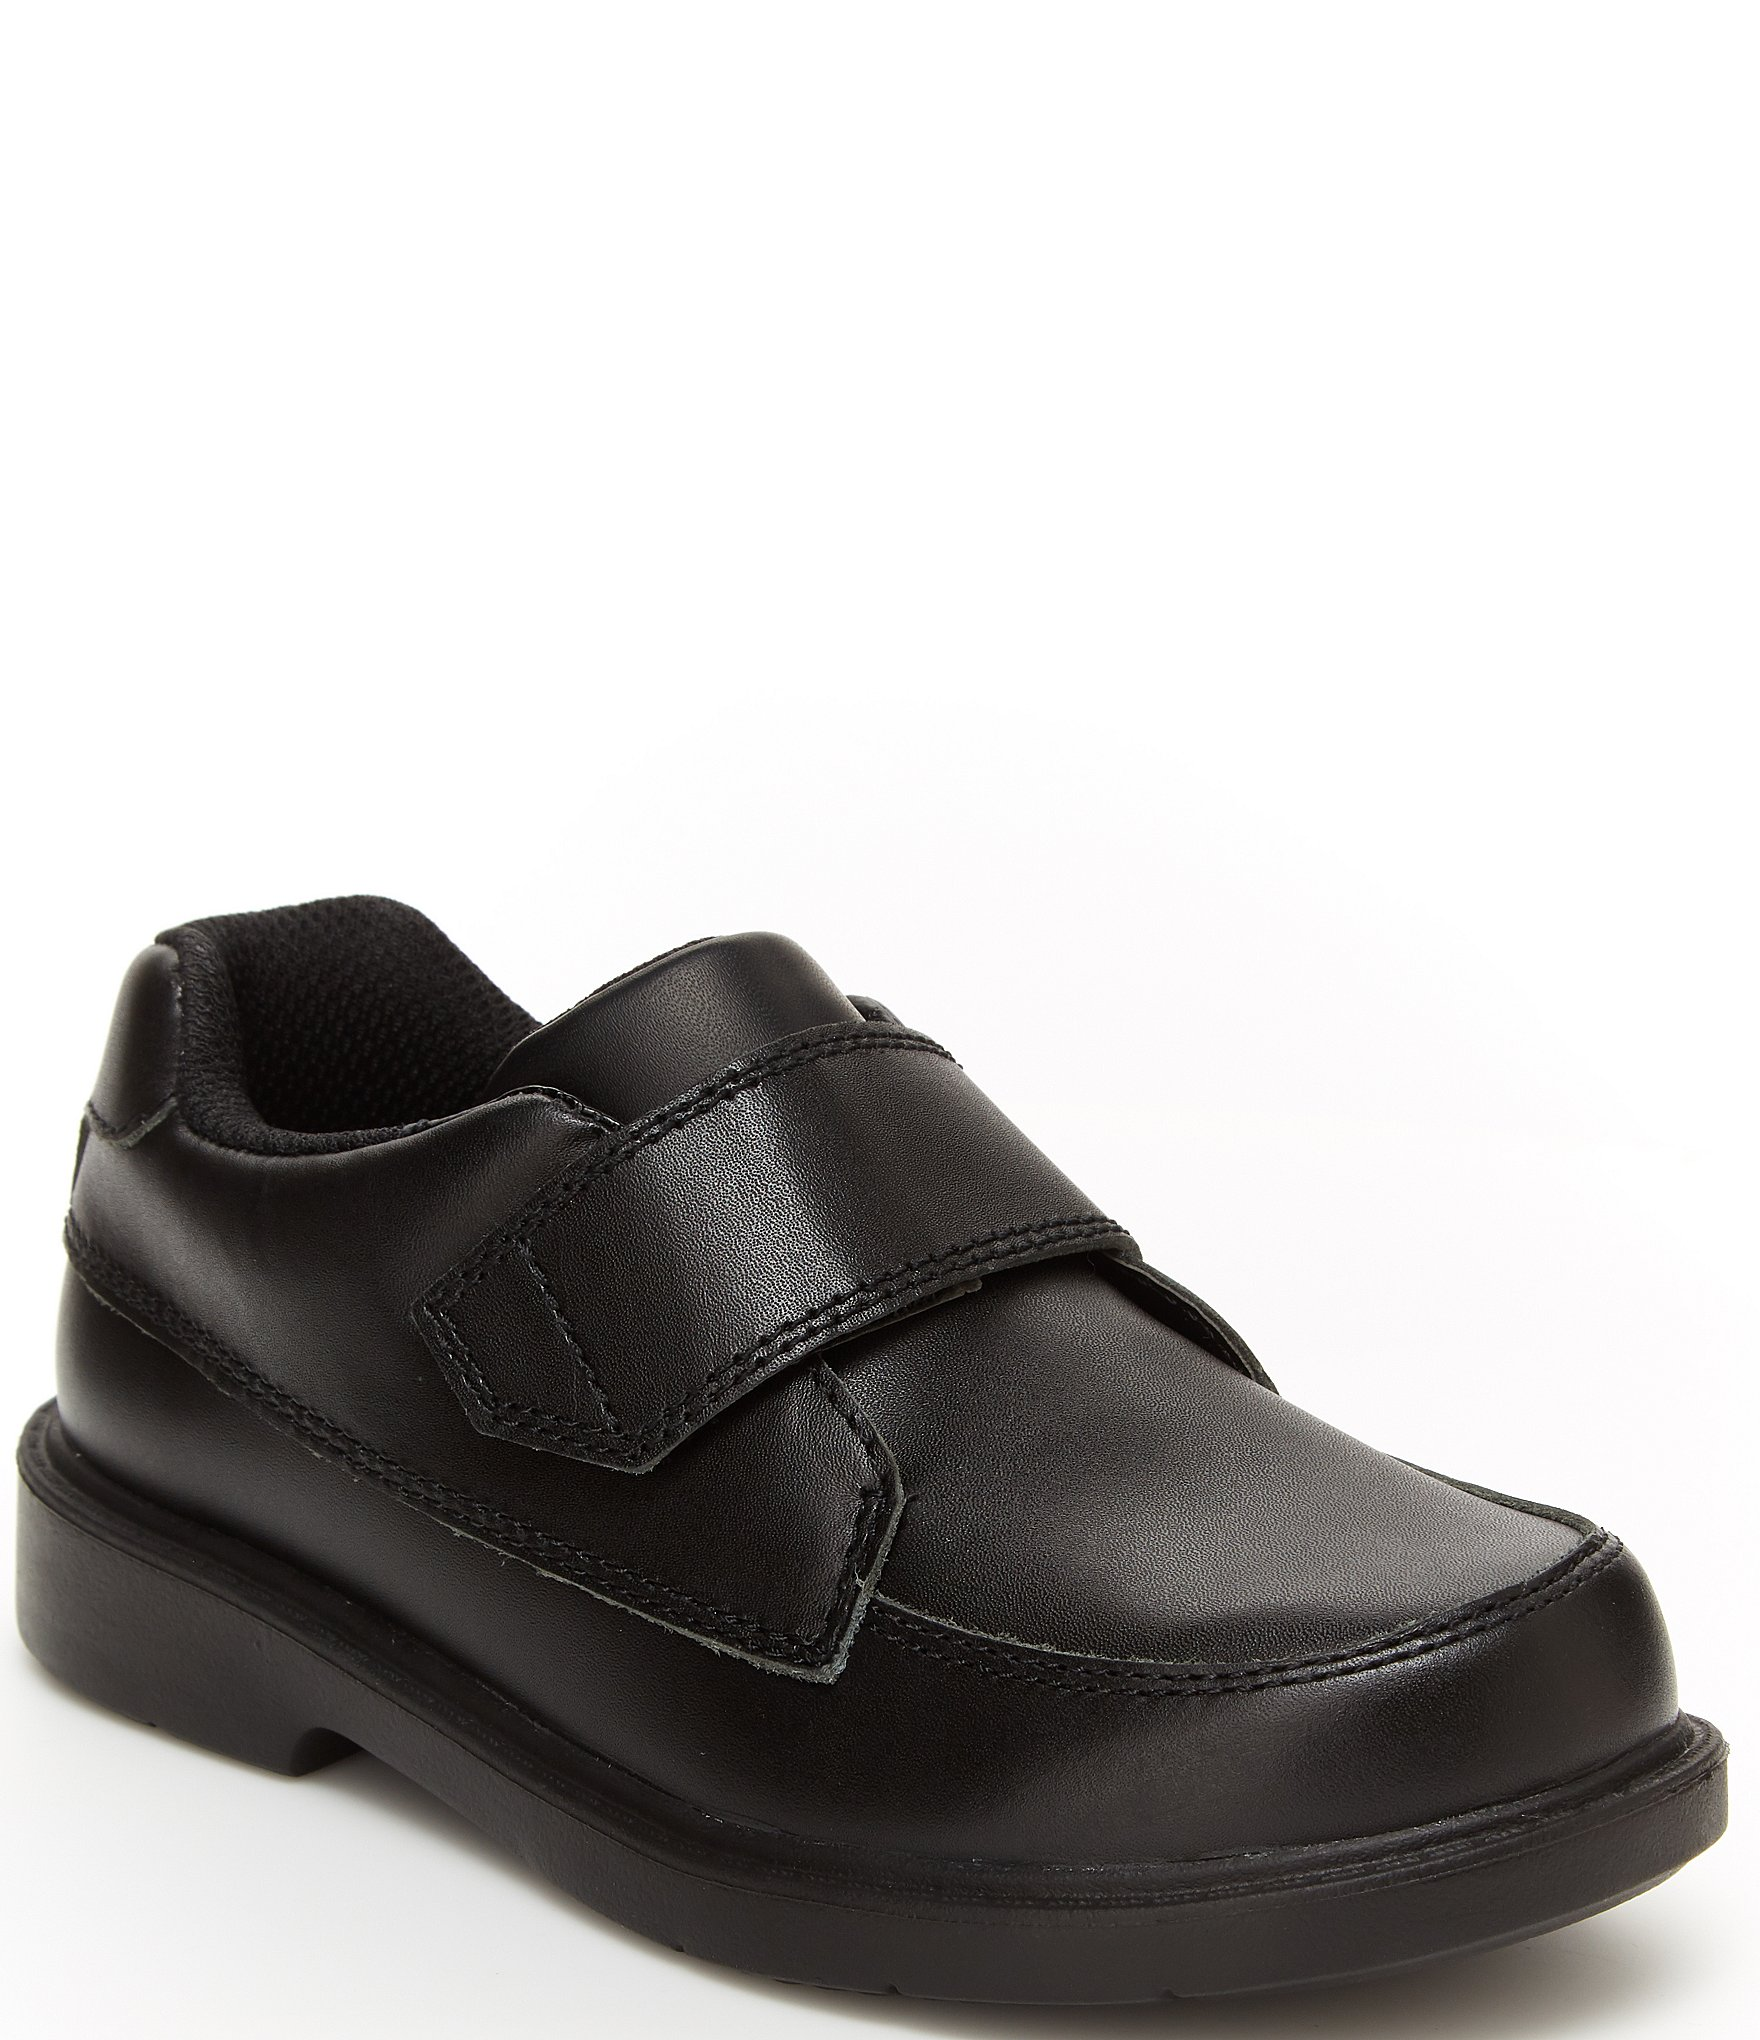 Stride Rite Boys' Laurence SR Leather